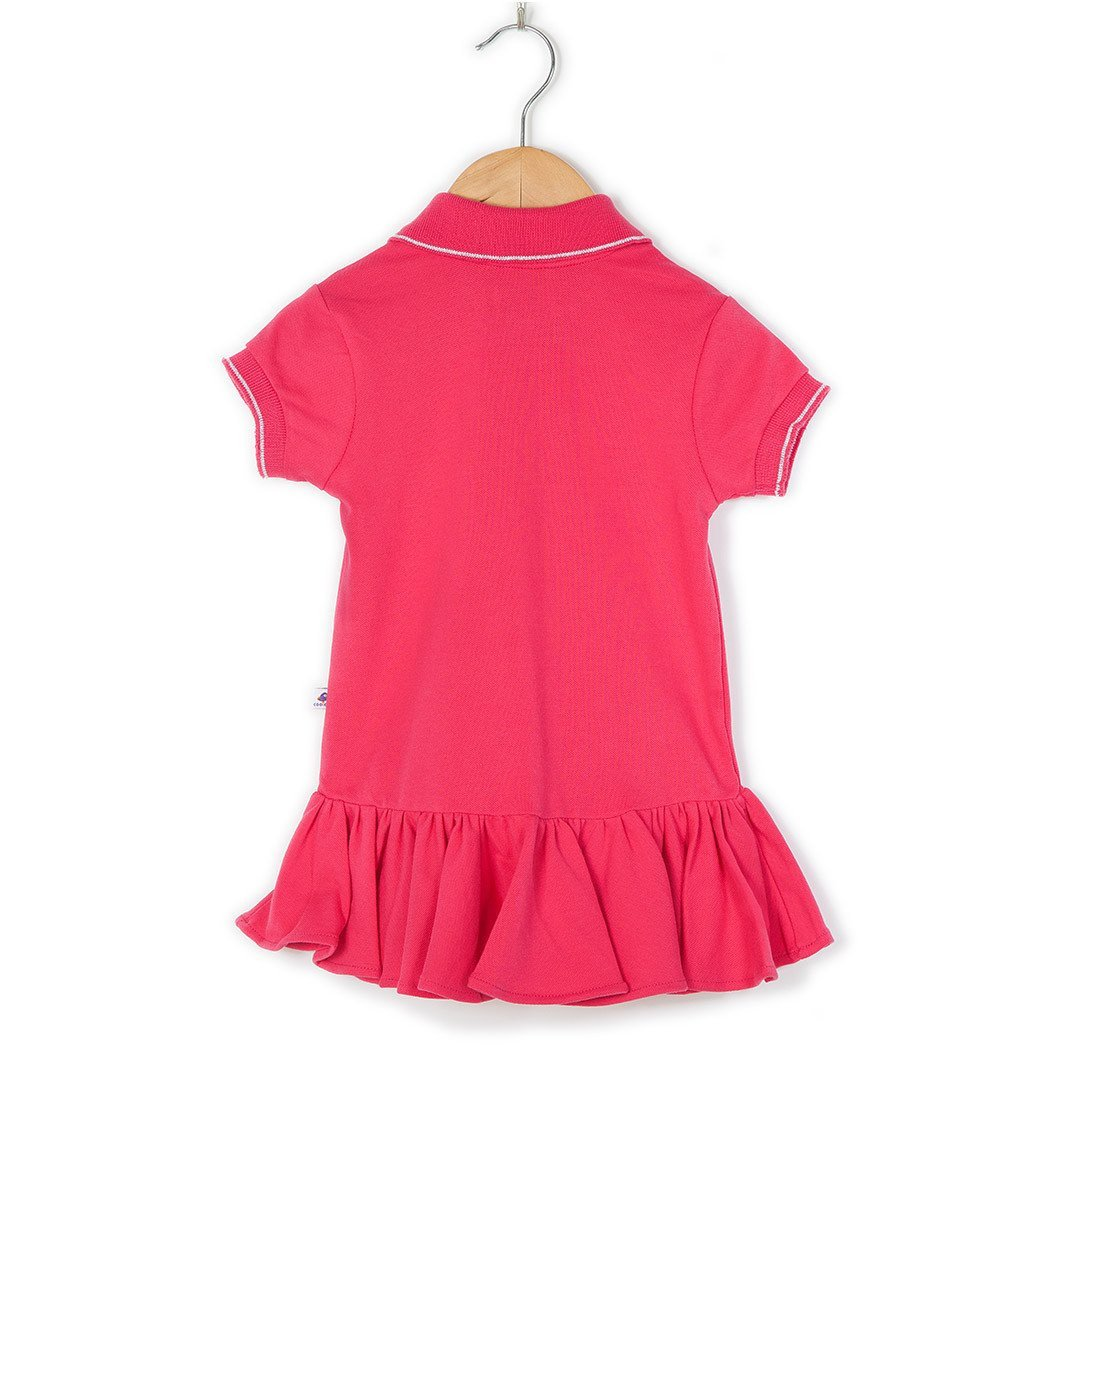 COO COO Polo Dress with Diamonte Logo - Rani Pink